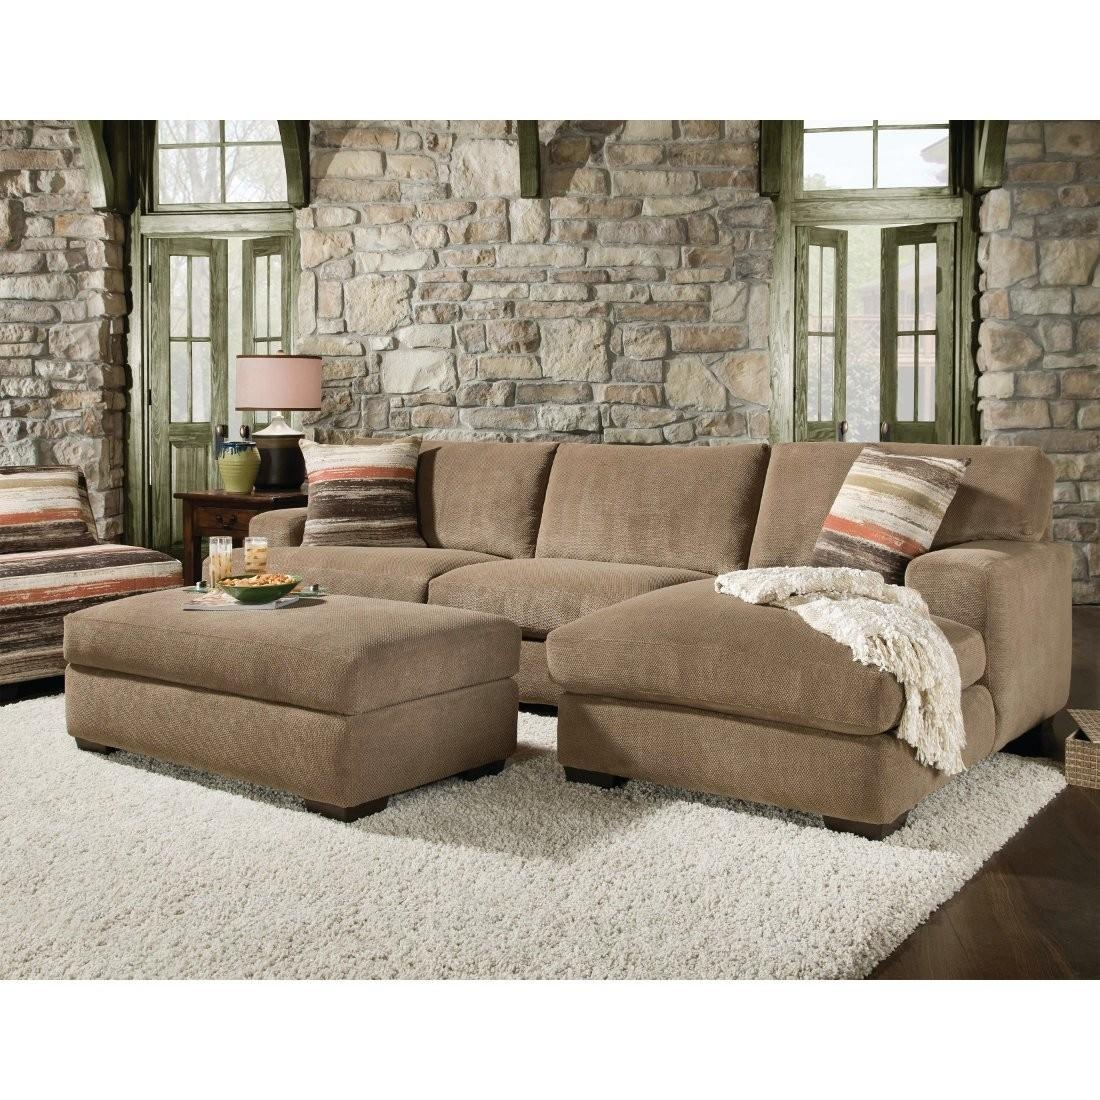 2 Piece Sectional Sofa With Chaise Cover | Tehranmix Decoration With Small 2 Piece Sectional (Image 4 of 20)